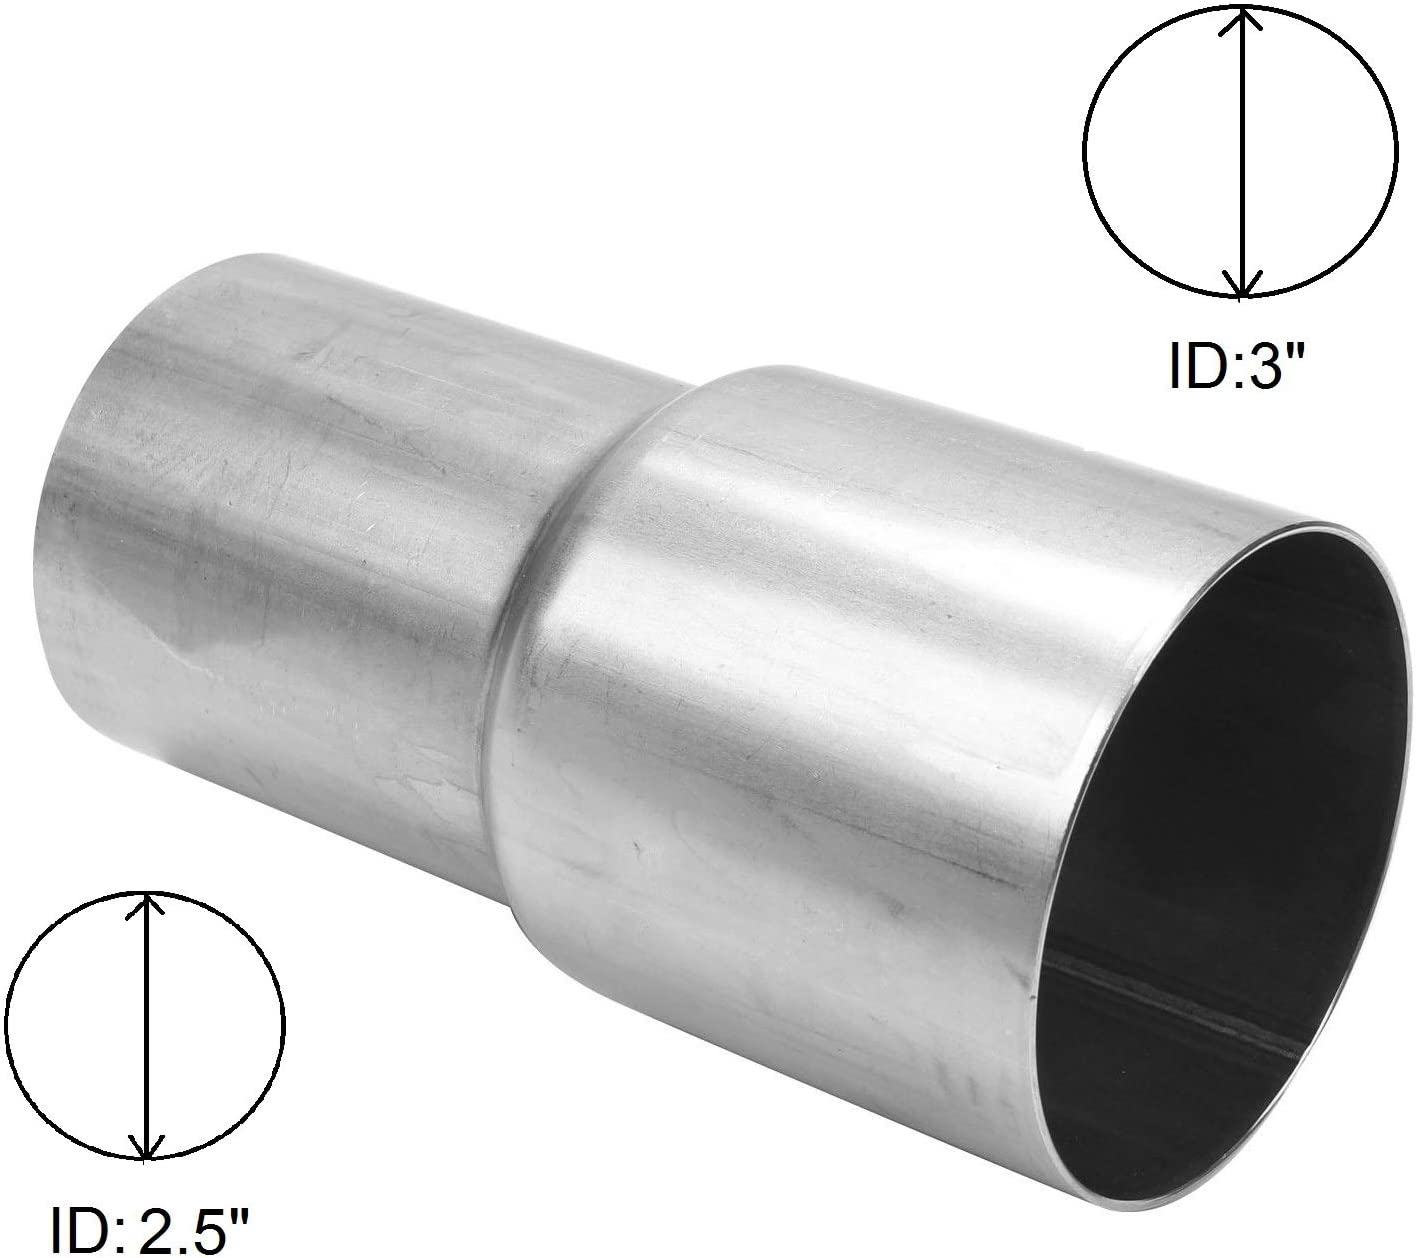 BETTERCLOUD Universal 2.5 ID to 3 ID Exhaust Pipe Adapter Connector Reducer Mild Steel